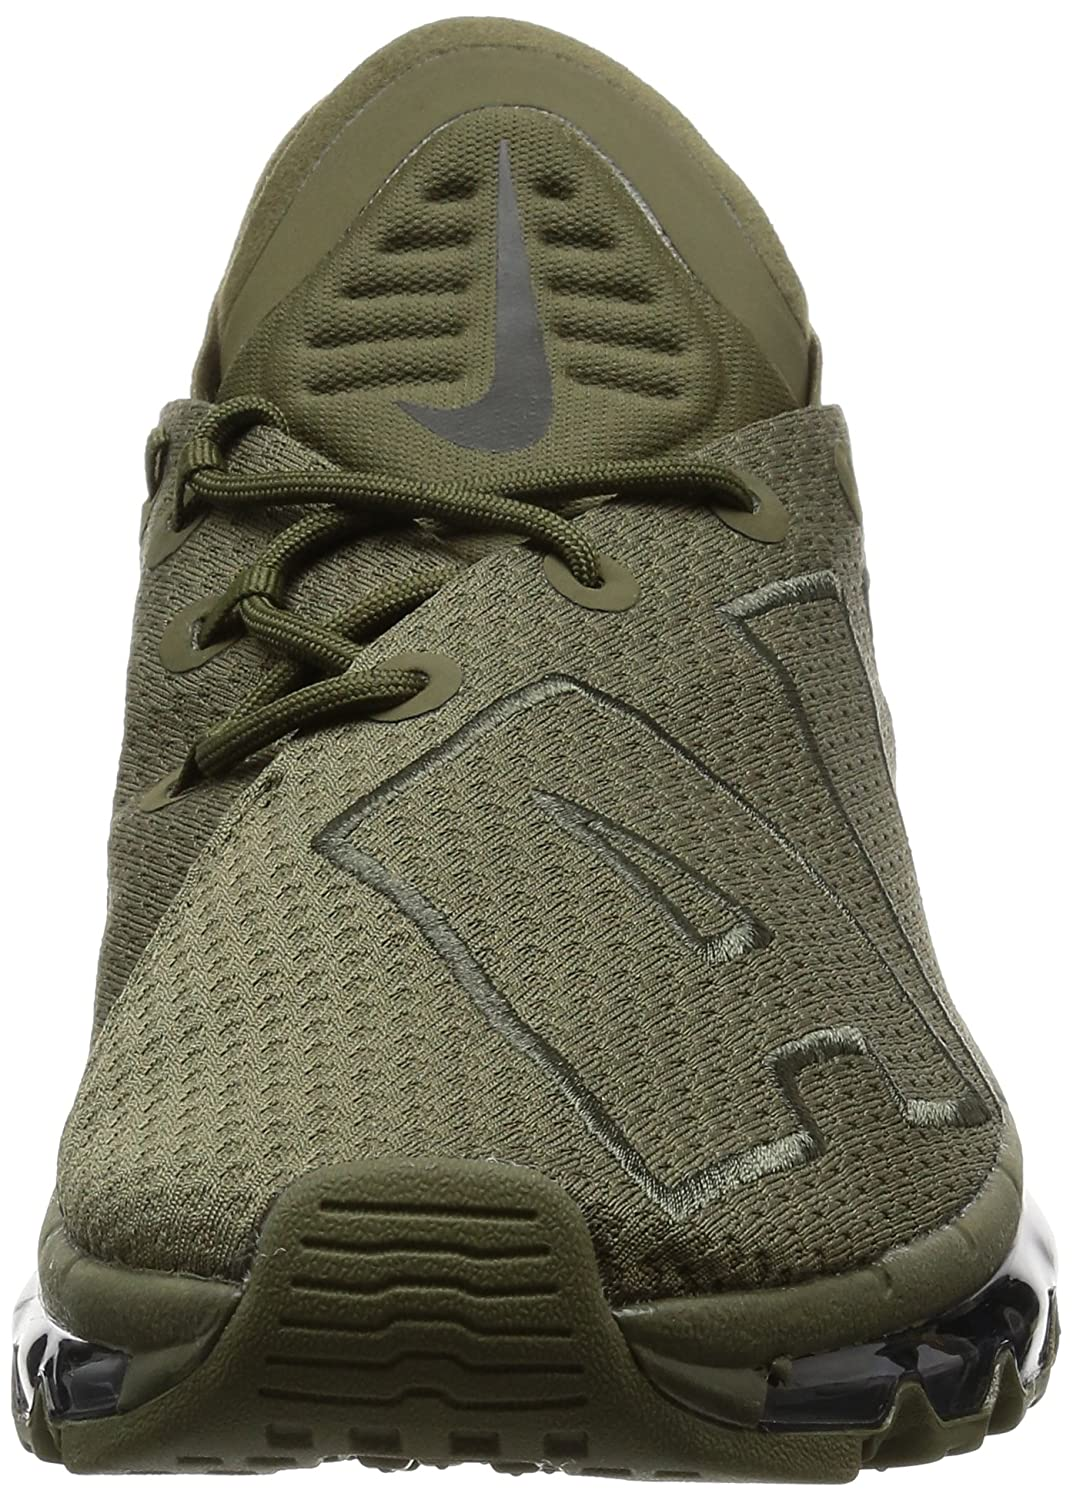 Amazon.com | NIKE Air Max Flair Mens Running Trainers 942236 Sneakers Shoes (UK 9.5 US 10.5 EU 44.5, Medium Olive 200) | Fashion Sneakers